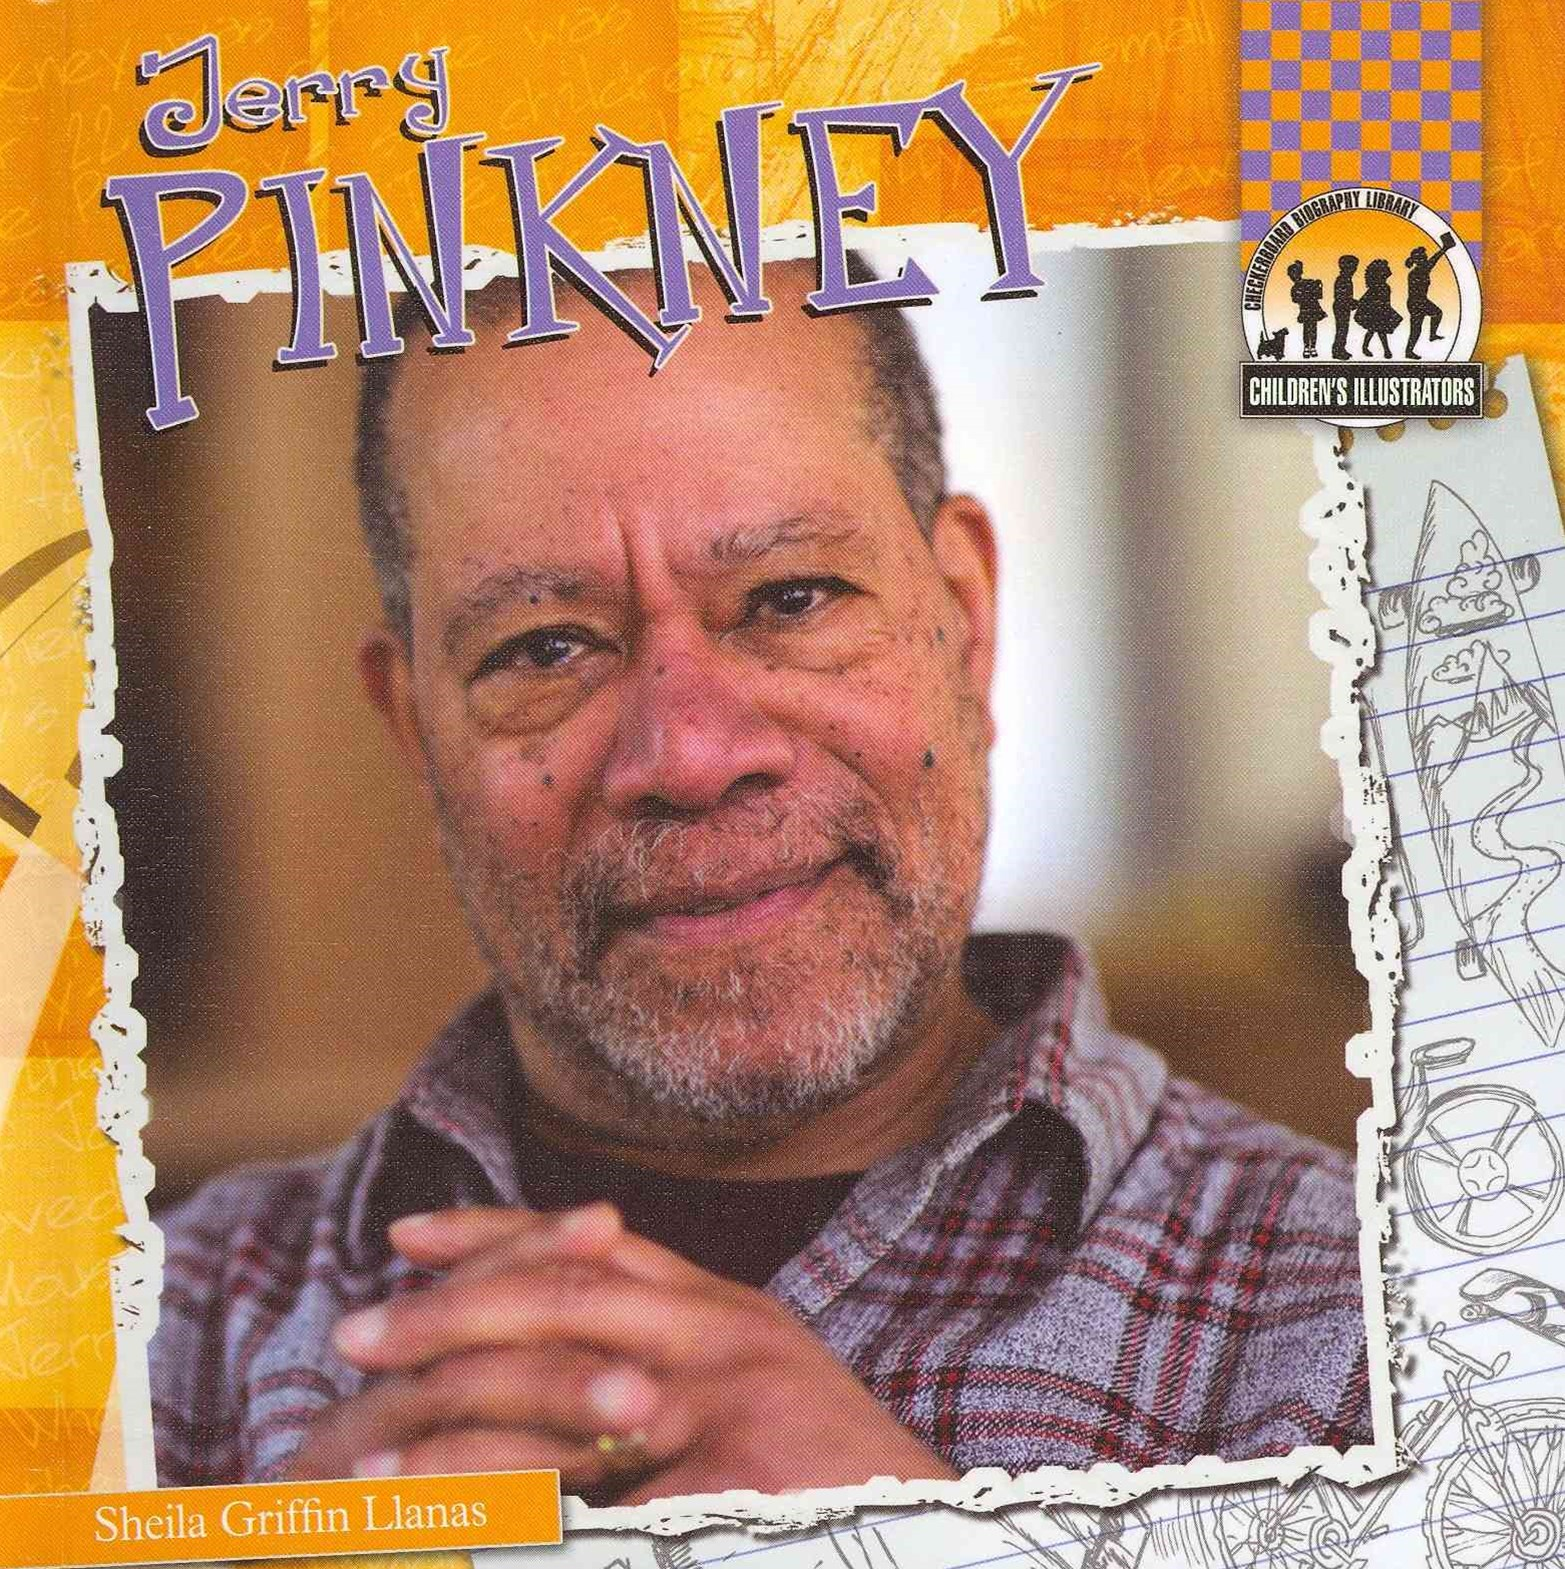 Jerry Pinkney